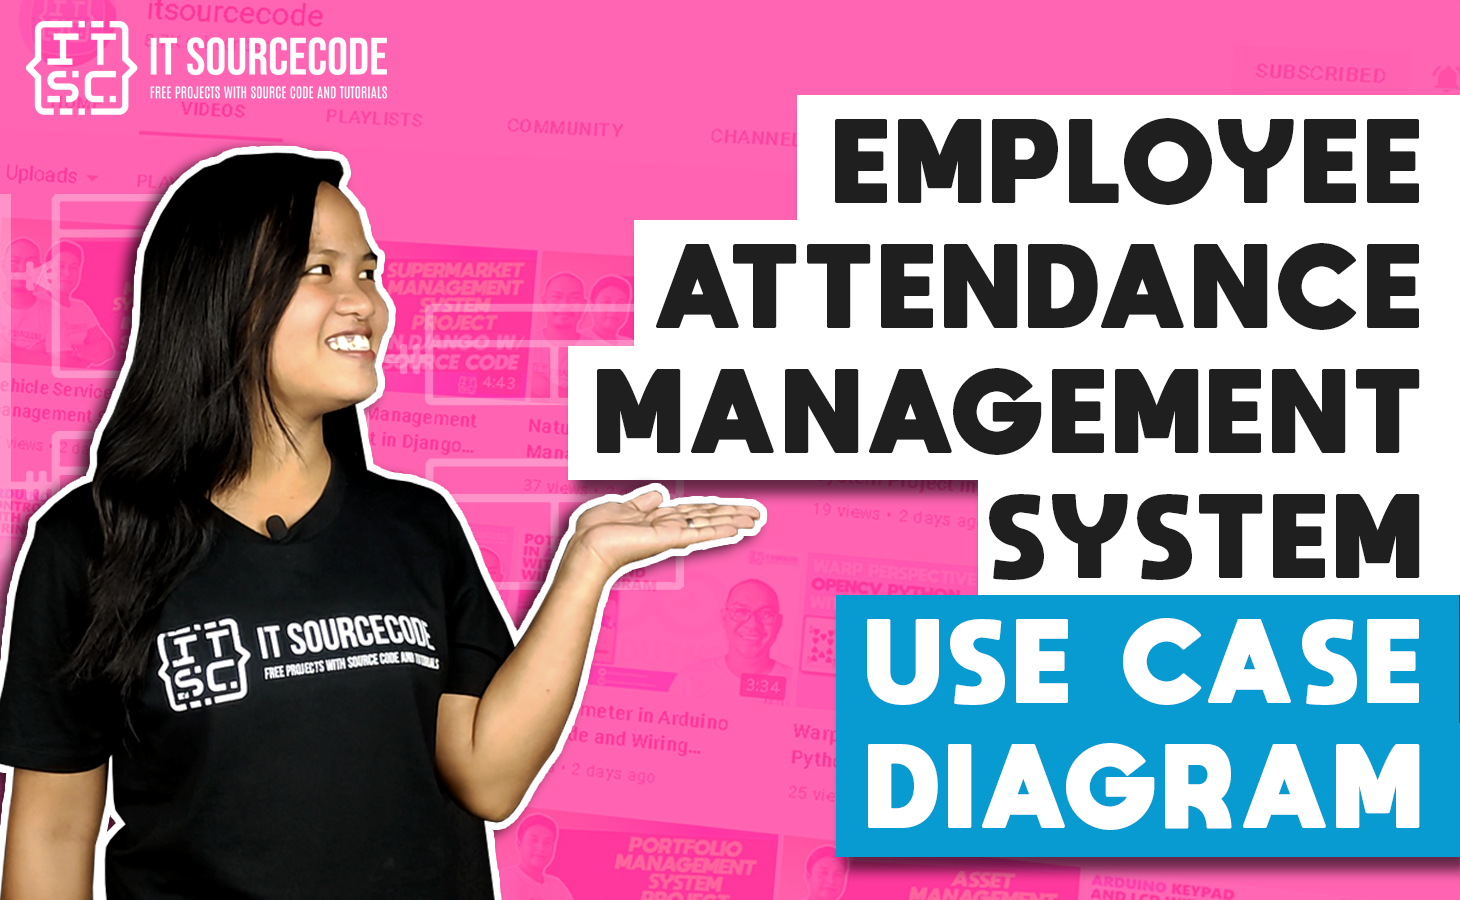 Employee Attendance Management System Use Case Diagram